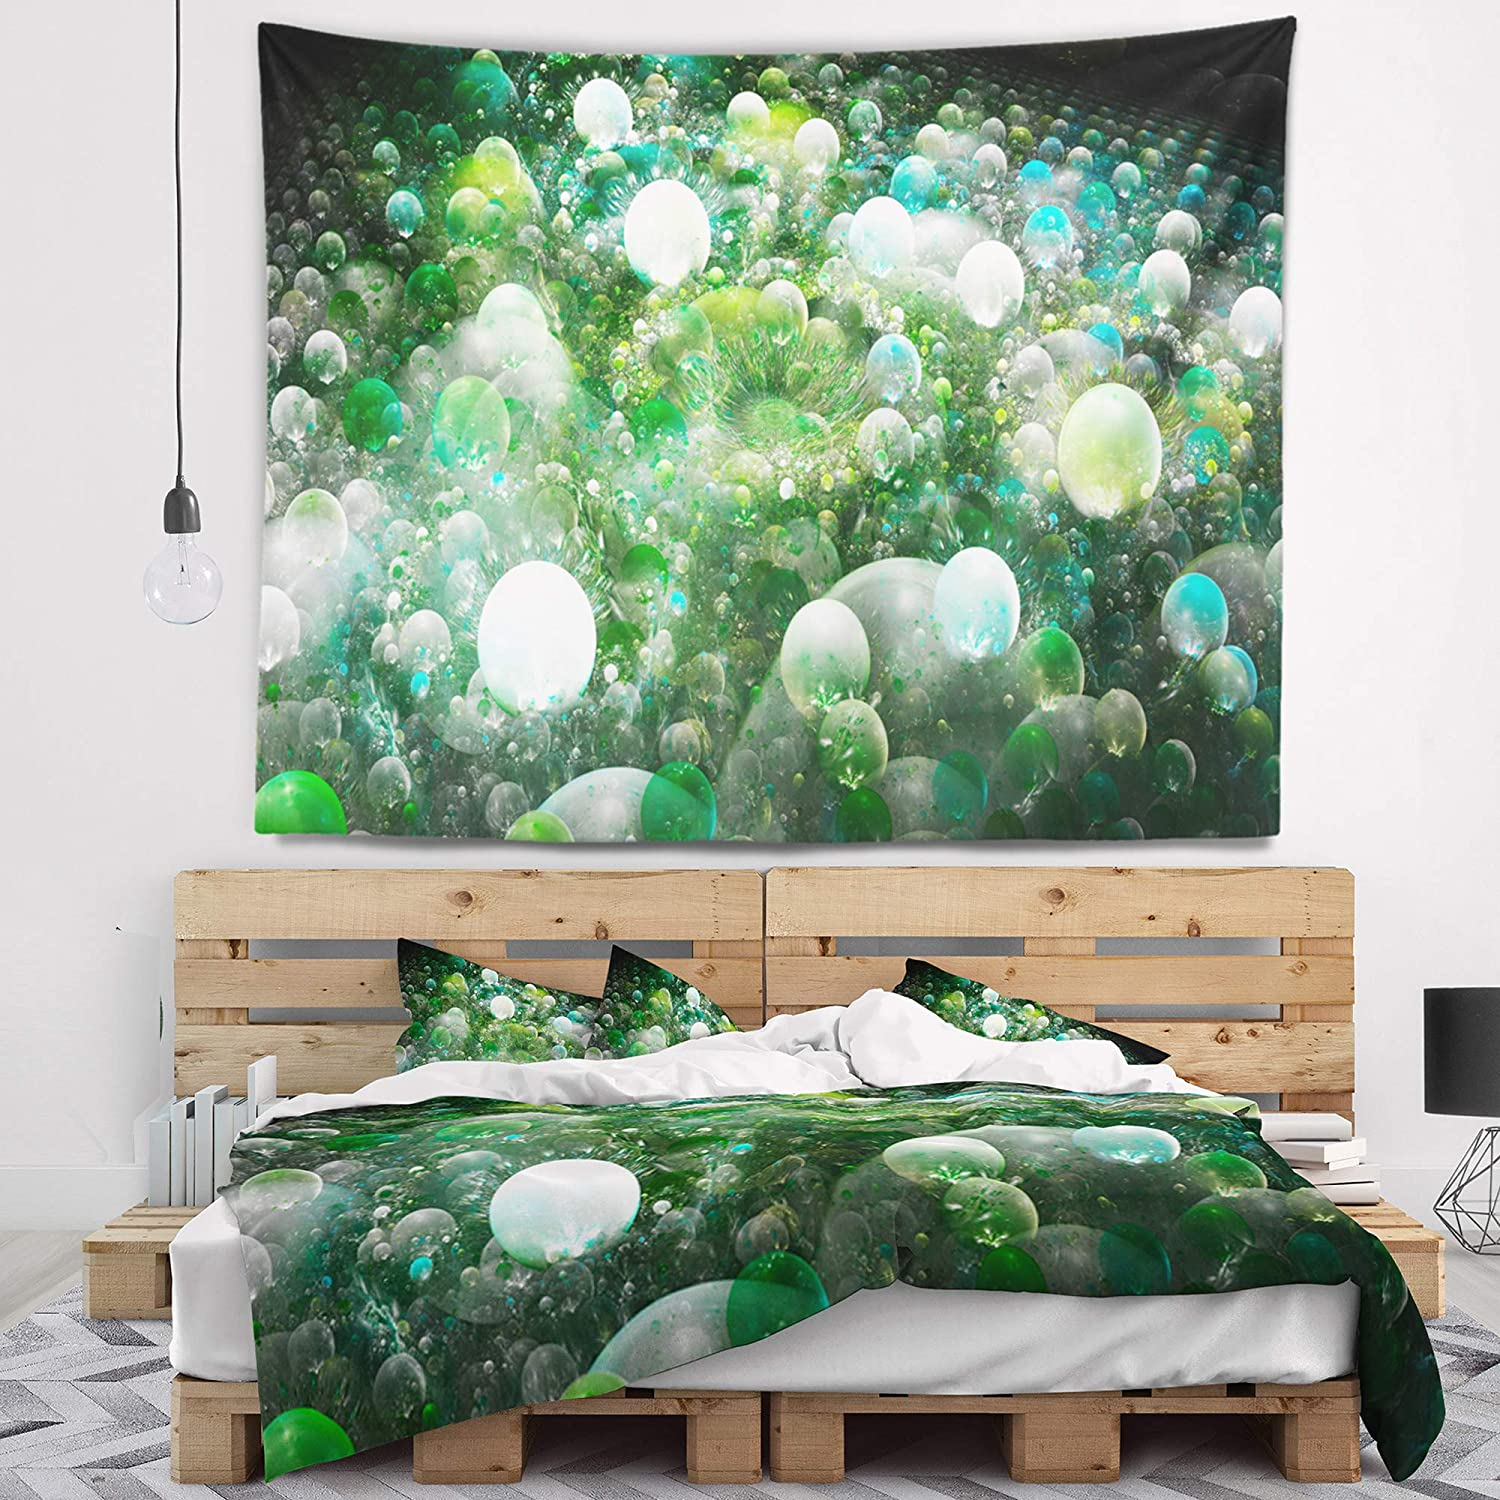 39 in x 32 in Designart TAP16294-39-32  Green Fractal Molecule Pattern Abstract Blanket D/écor Art for Home and Office Wall Tapestry Medium Created On Lightweight Polyester Fabric